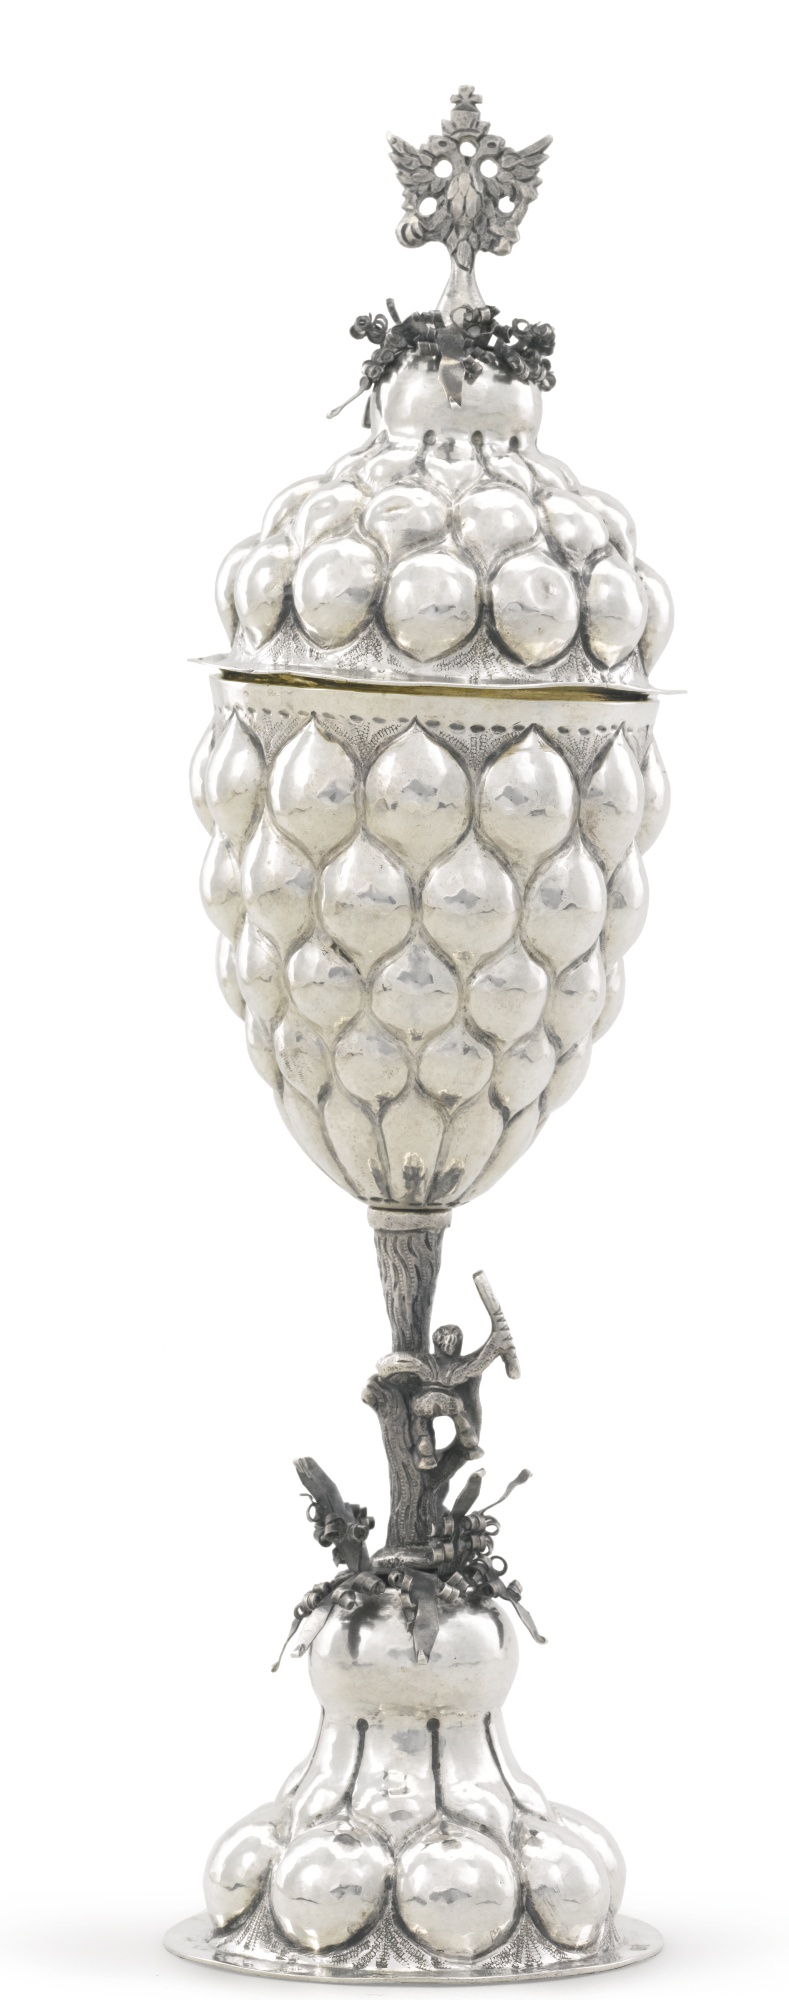 A silver pineapple cup and cover, Gavrila Zon, Moscow, 1762